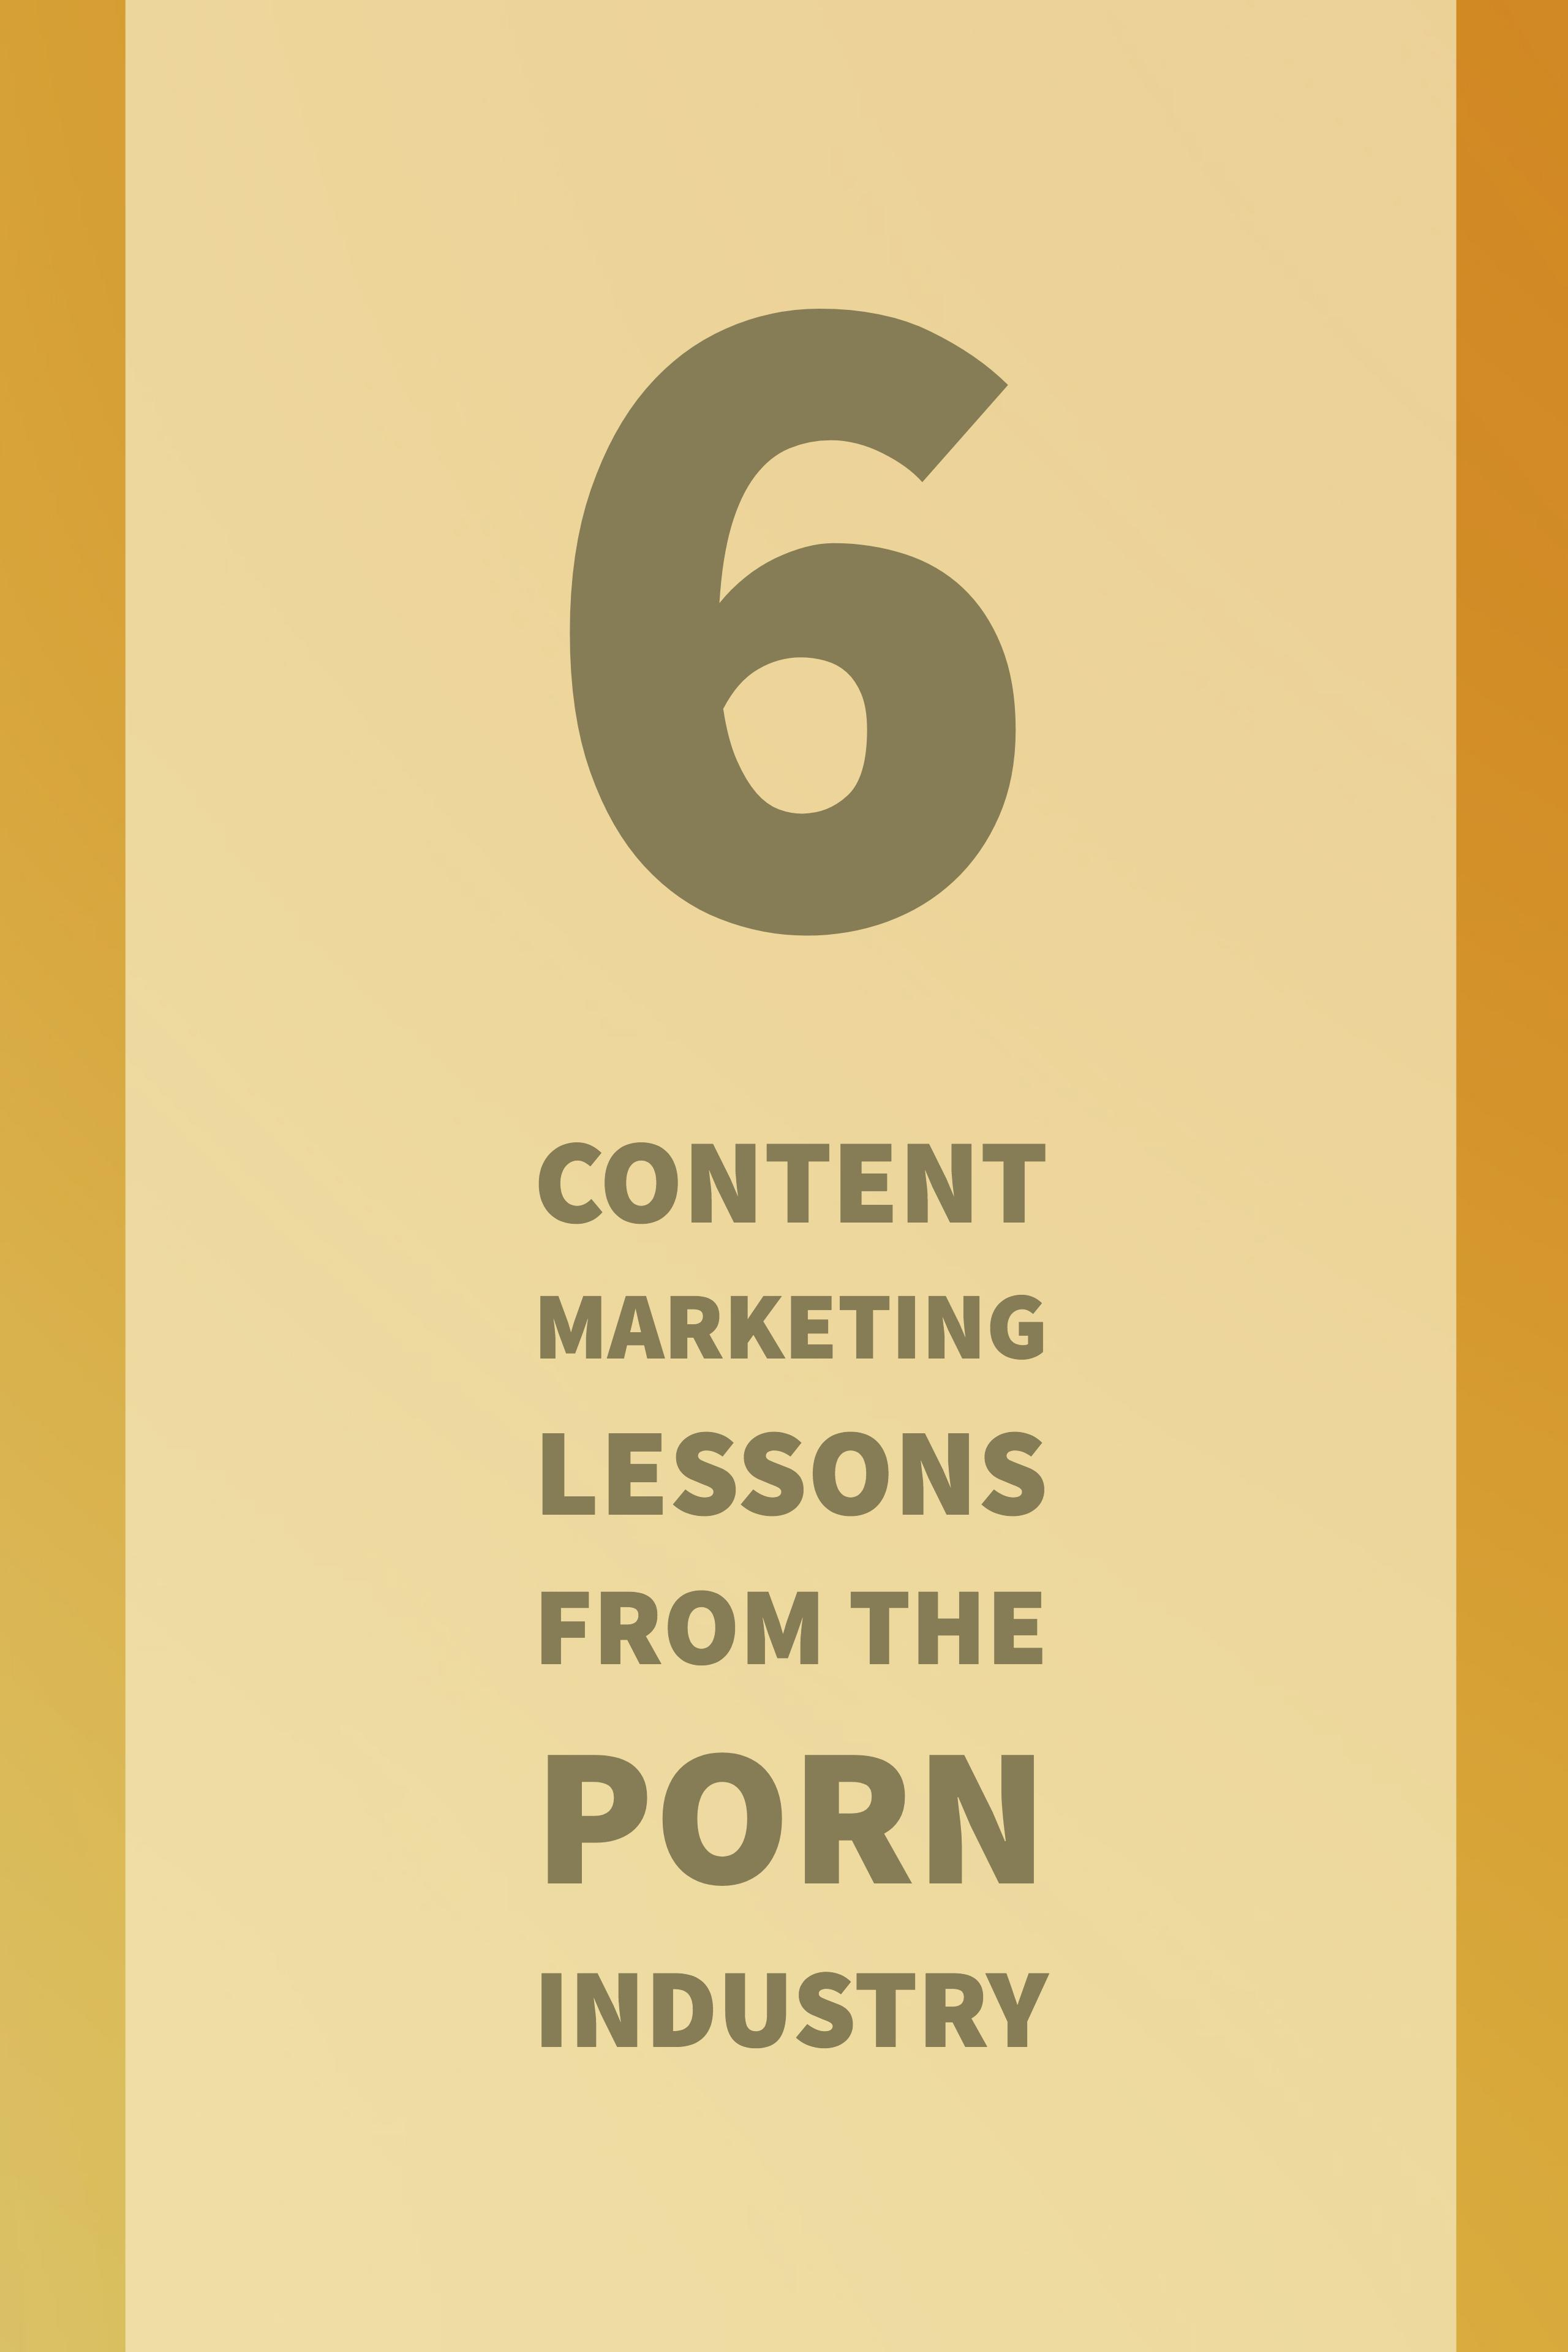 Content Marketing: Click the pin to find out why porn sites are absolute geniuses when it comes to marketing. | Content Marketing | Storytelling Marketing | Porn Industry Marketing